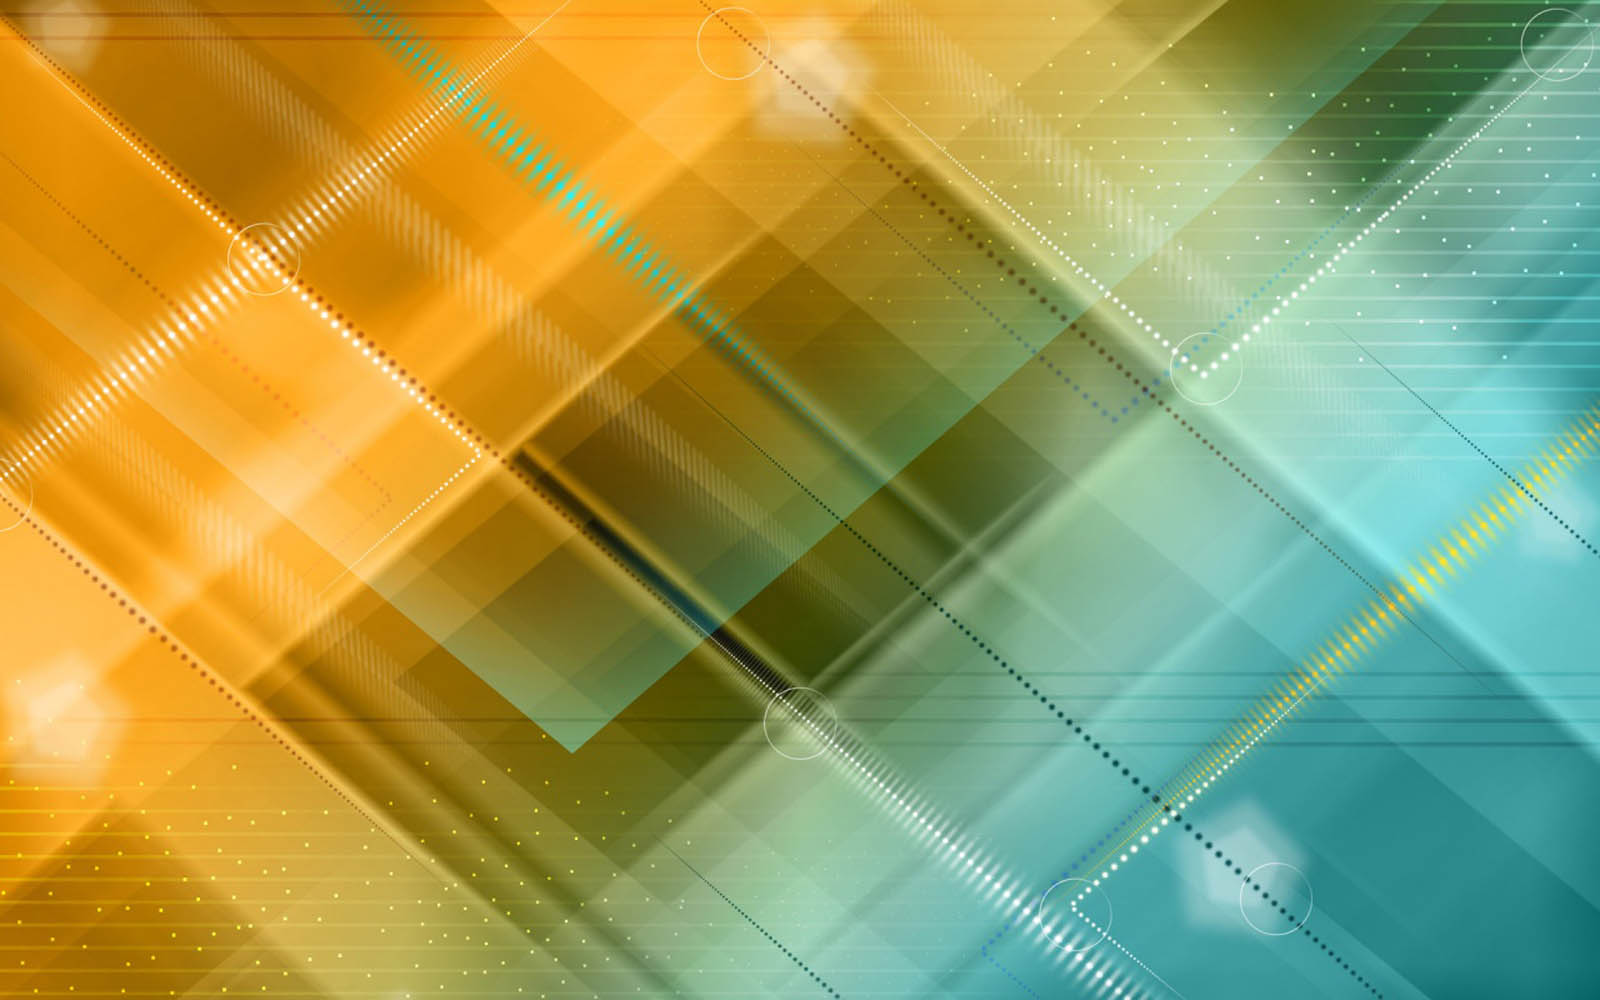 free hd abstract wallpaper - photo #21